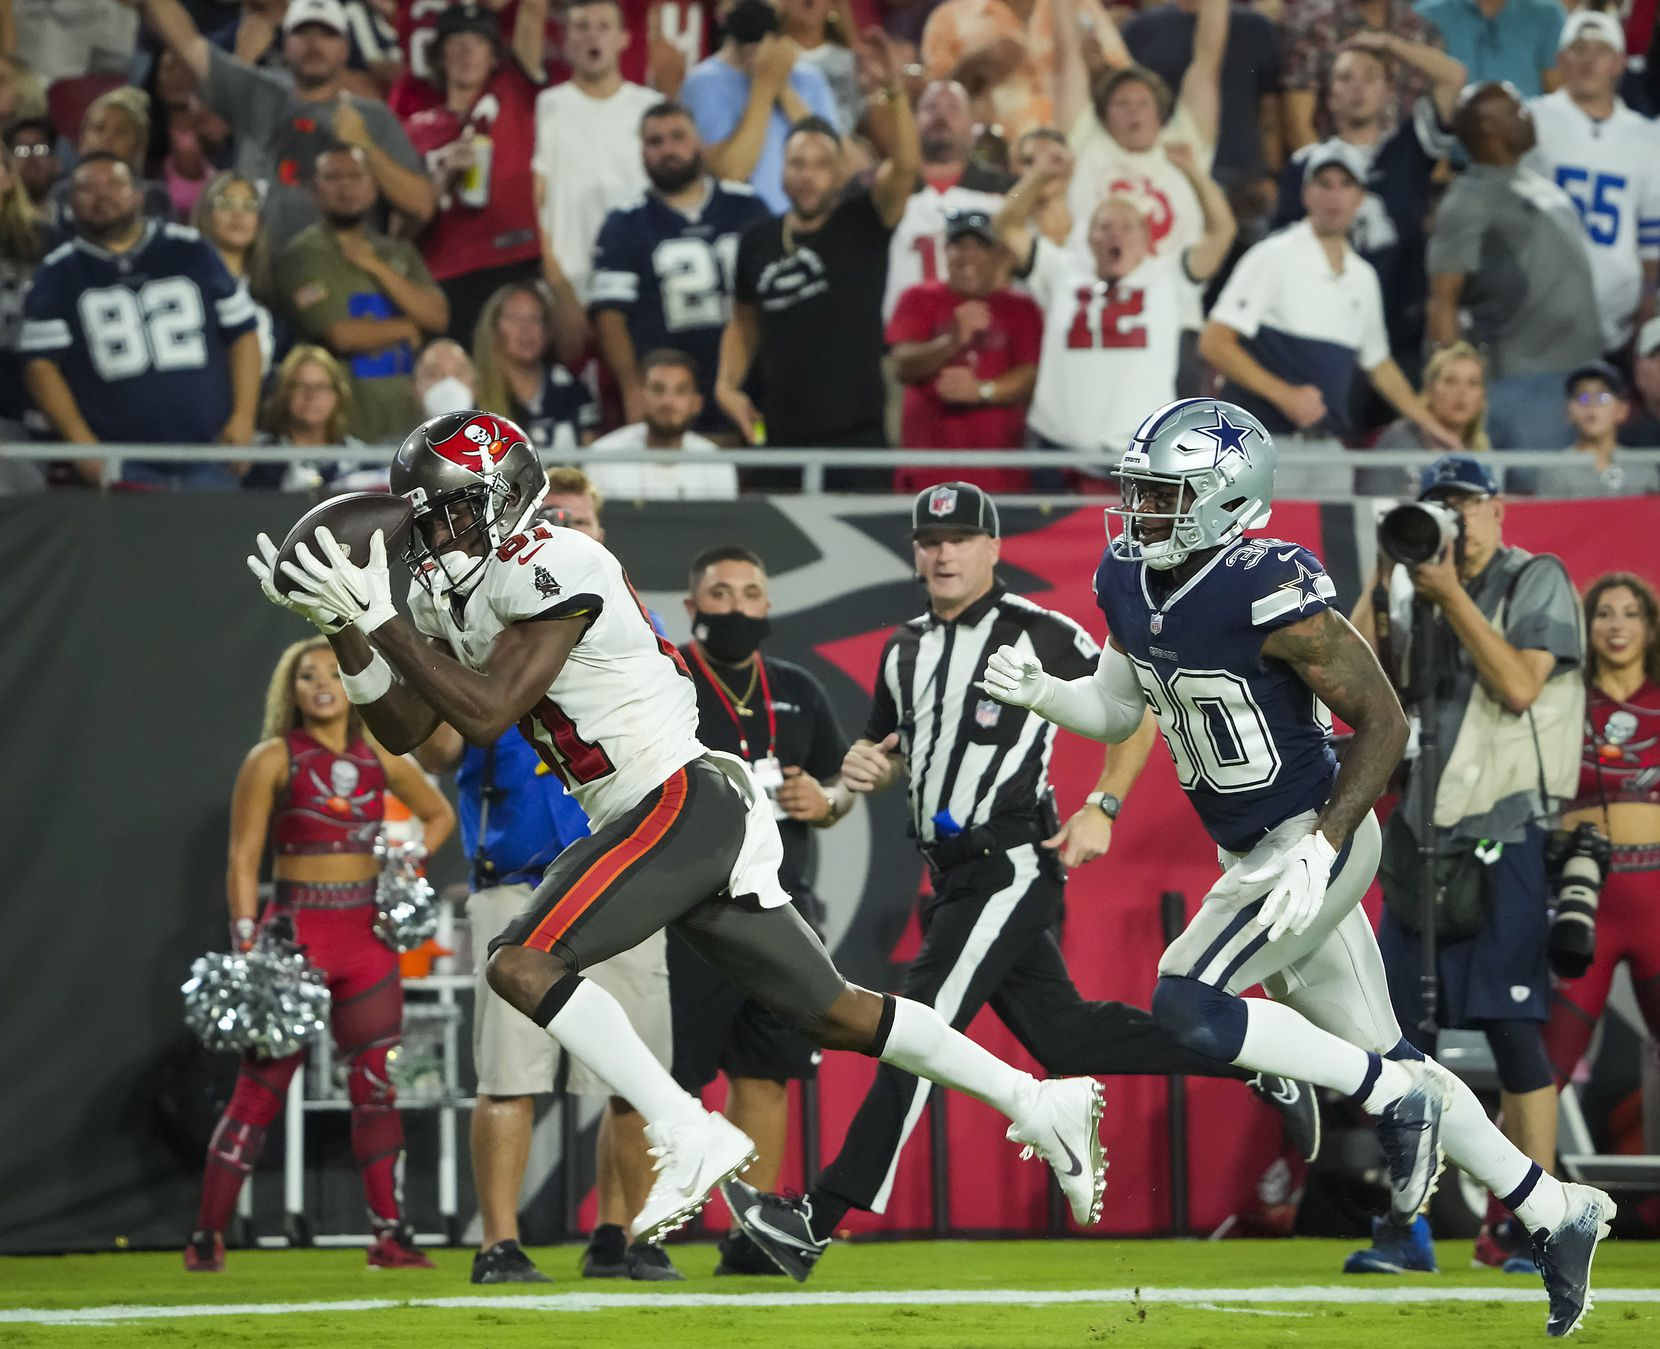 Tampa Bay Buccaneers wide receiver Antonio Brown (81) hauls in a long Dallas Cowboys catch past Dallas Cowboys cornerback Anthony Brown (30) during the first half of an NFL football game at Raymond James Stadium on Thursday, Sept. 9, 2021, in Tampa, Fla.